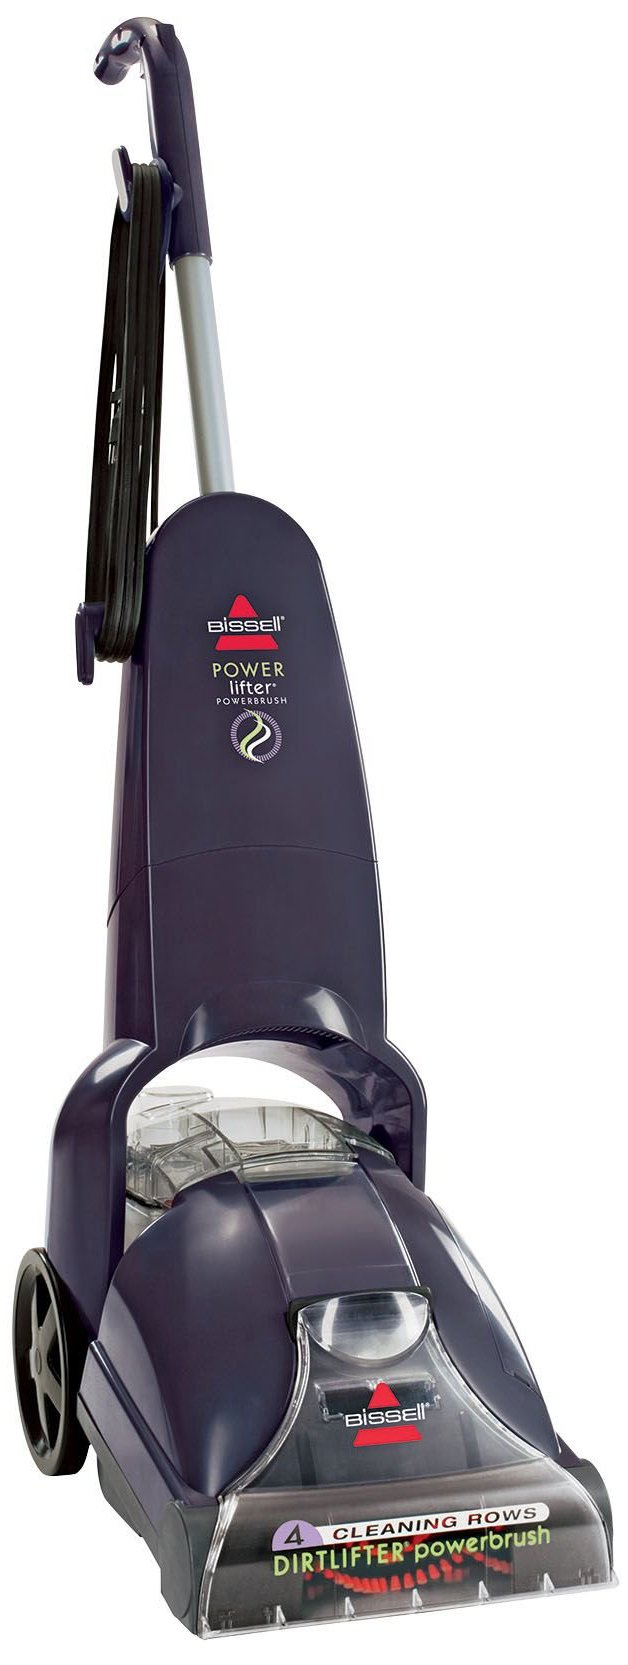 Bissell Vacuum Shampooer Pet Upright Carpet Cleaner